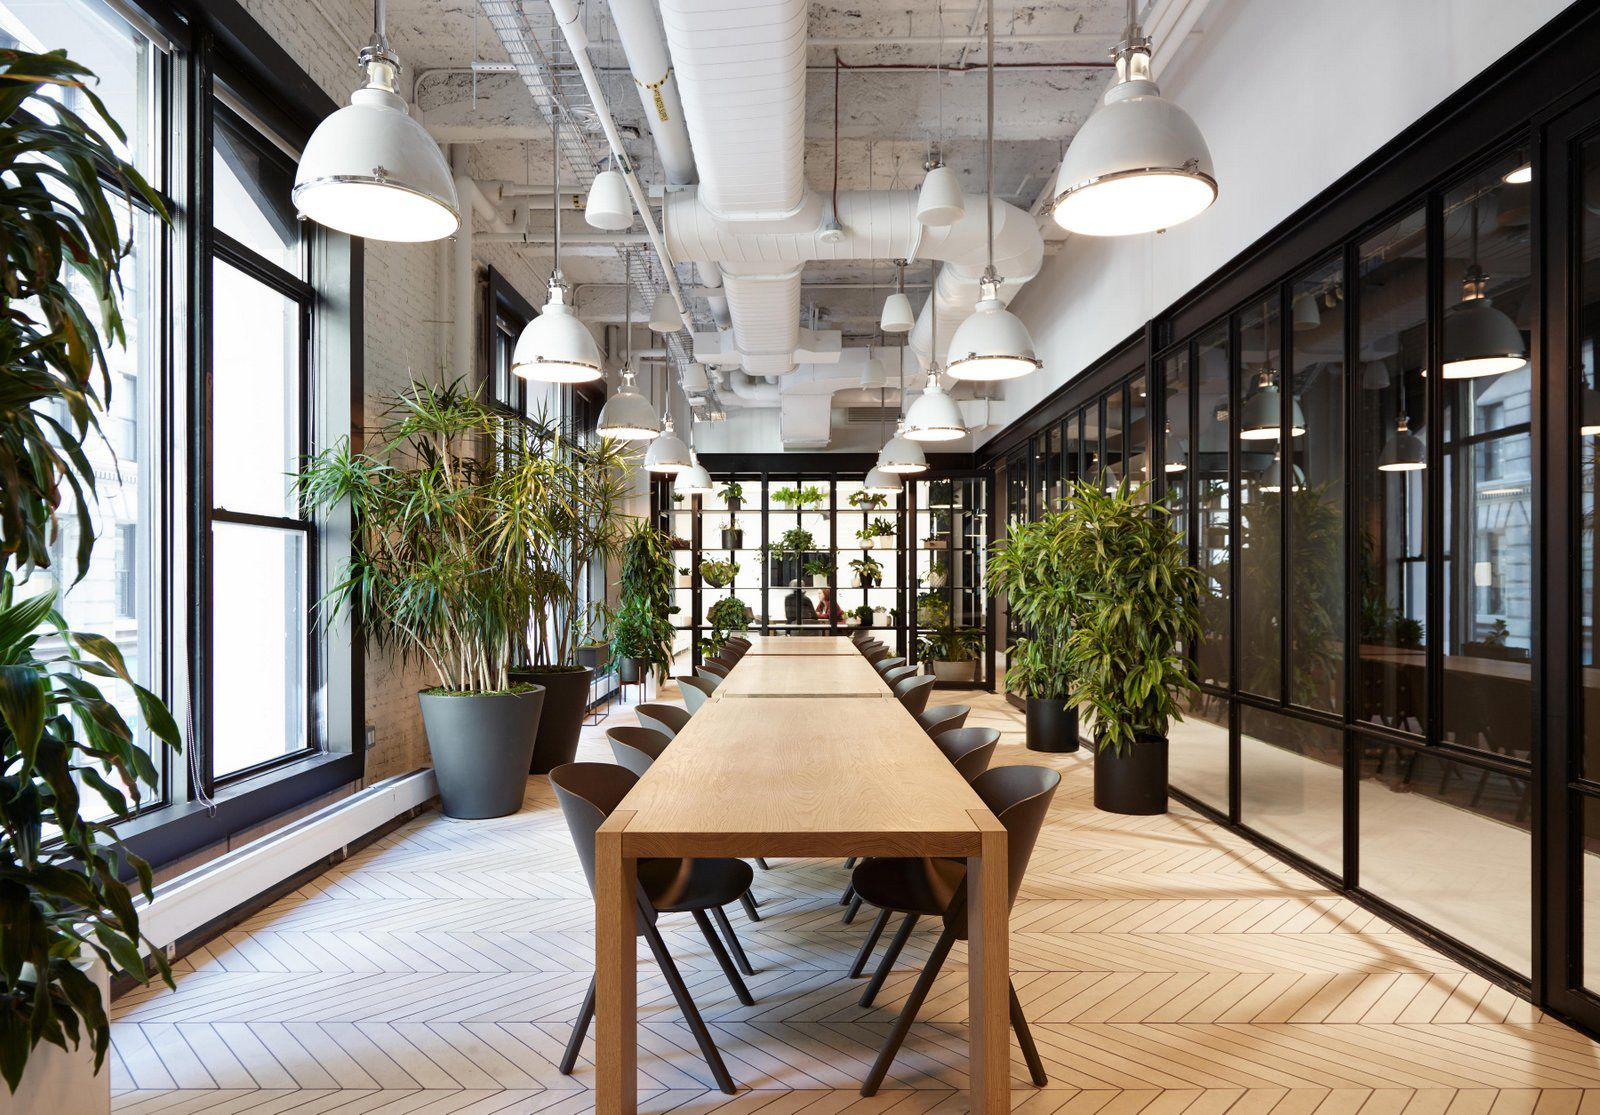 Office tour digital media company headquarters new york city office plants and green walls Interior design firms in new york city